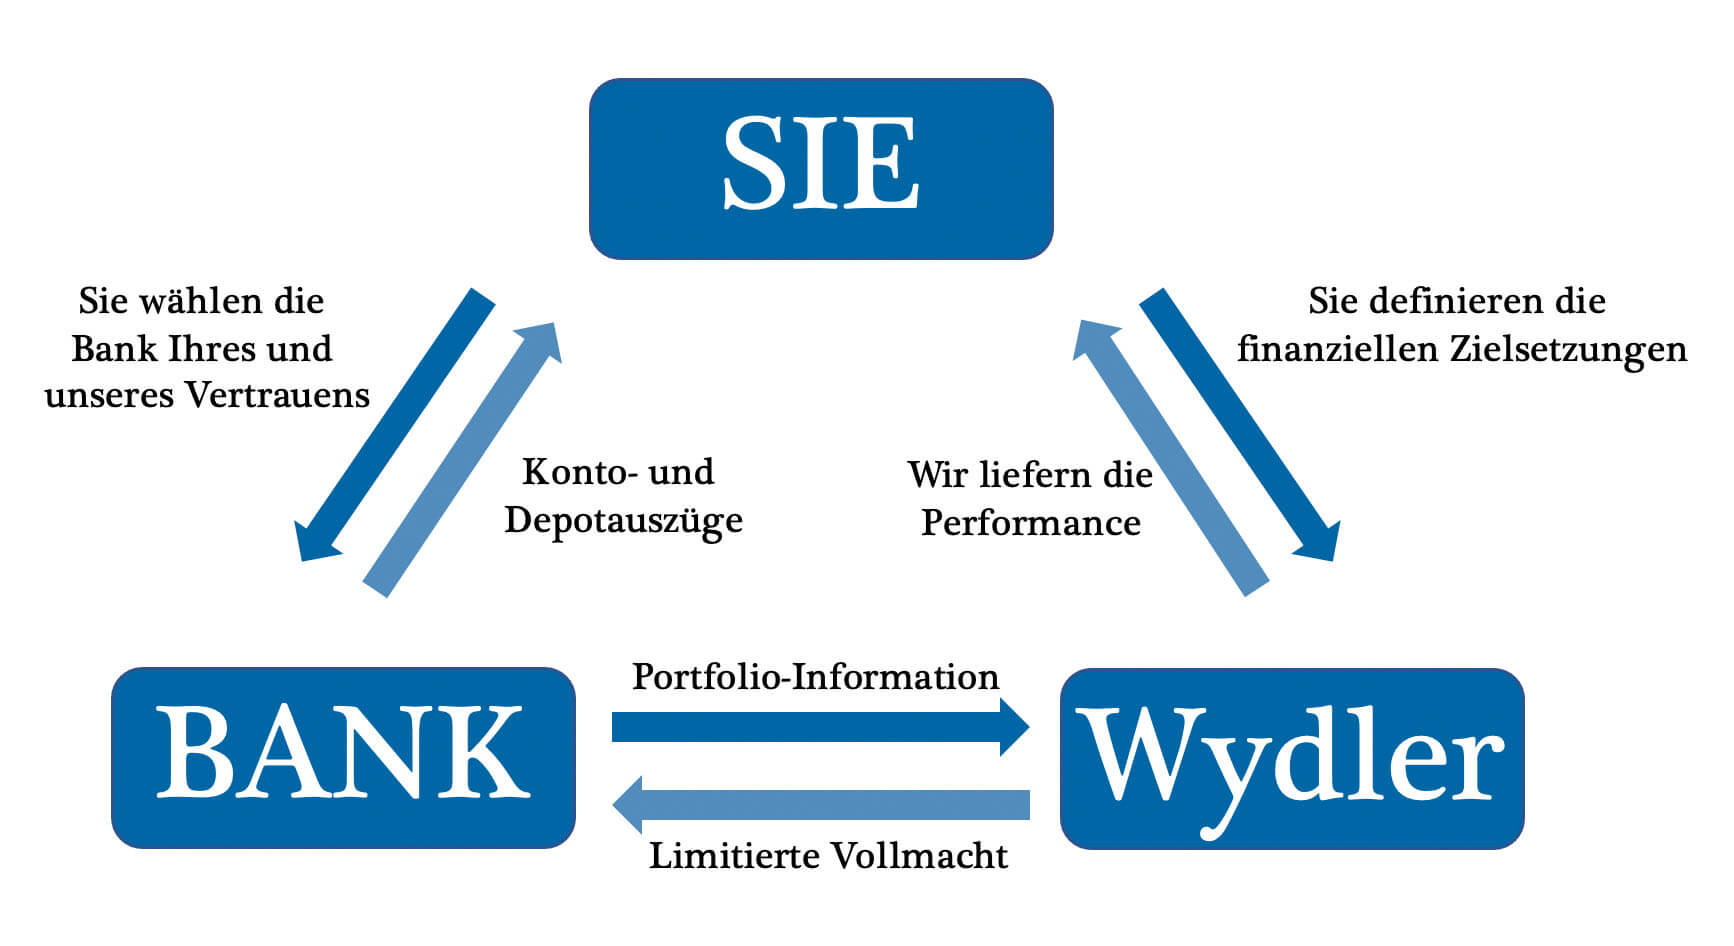 Wydler - Explanation of relationships between client bank and asset manager